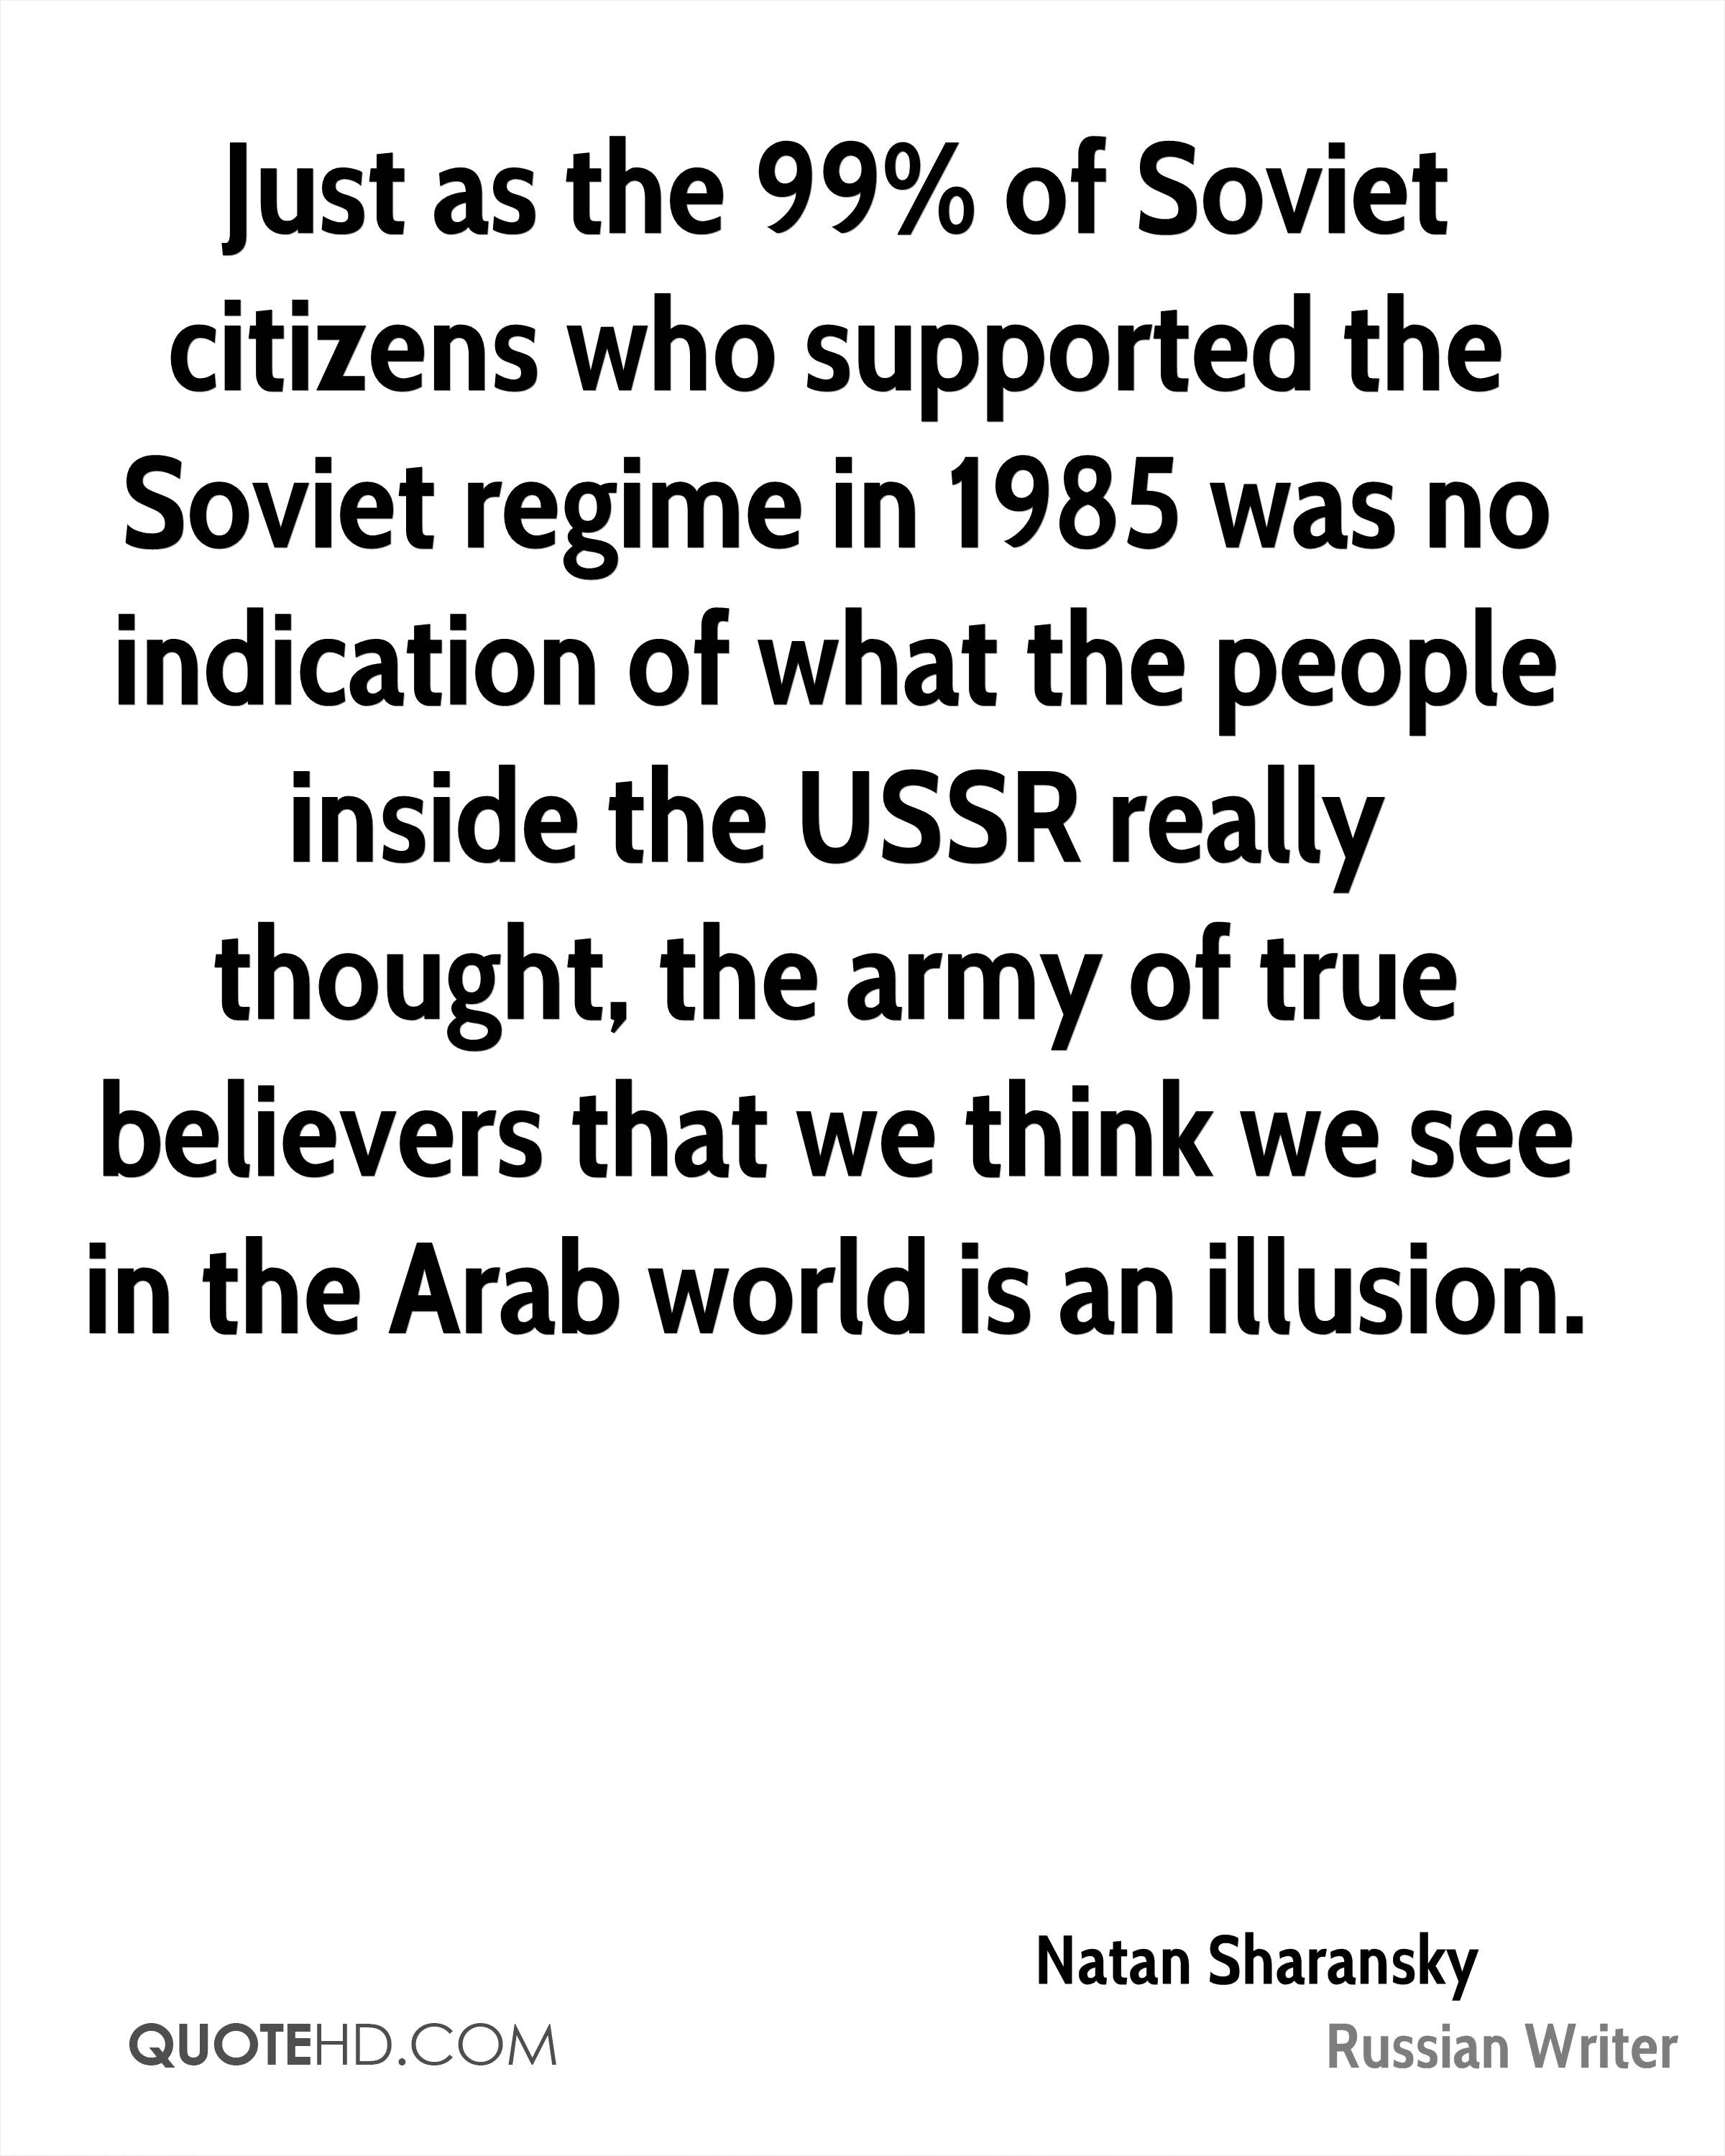 Just as the 99% of Soviet citizens who supported the Soviet regime in 1985 was no indication of what the people inside the USSR really thought, the army of true believers that we think we see in the Arab world is an illusion.